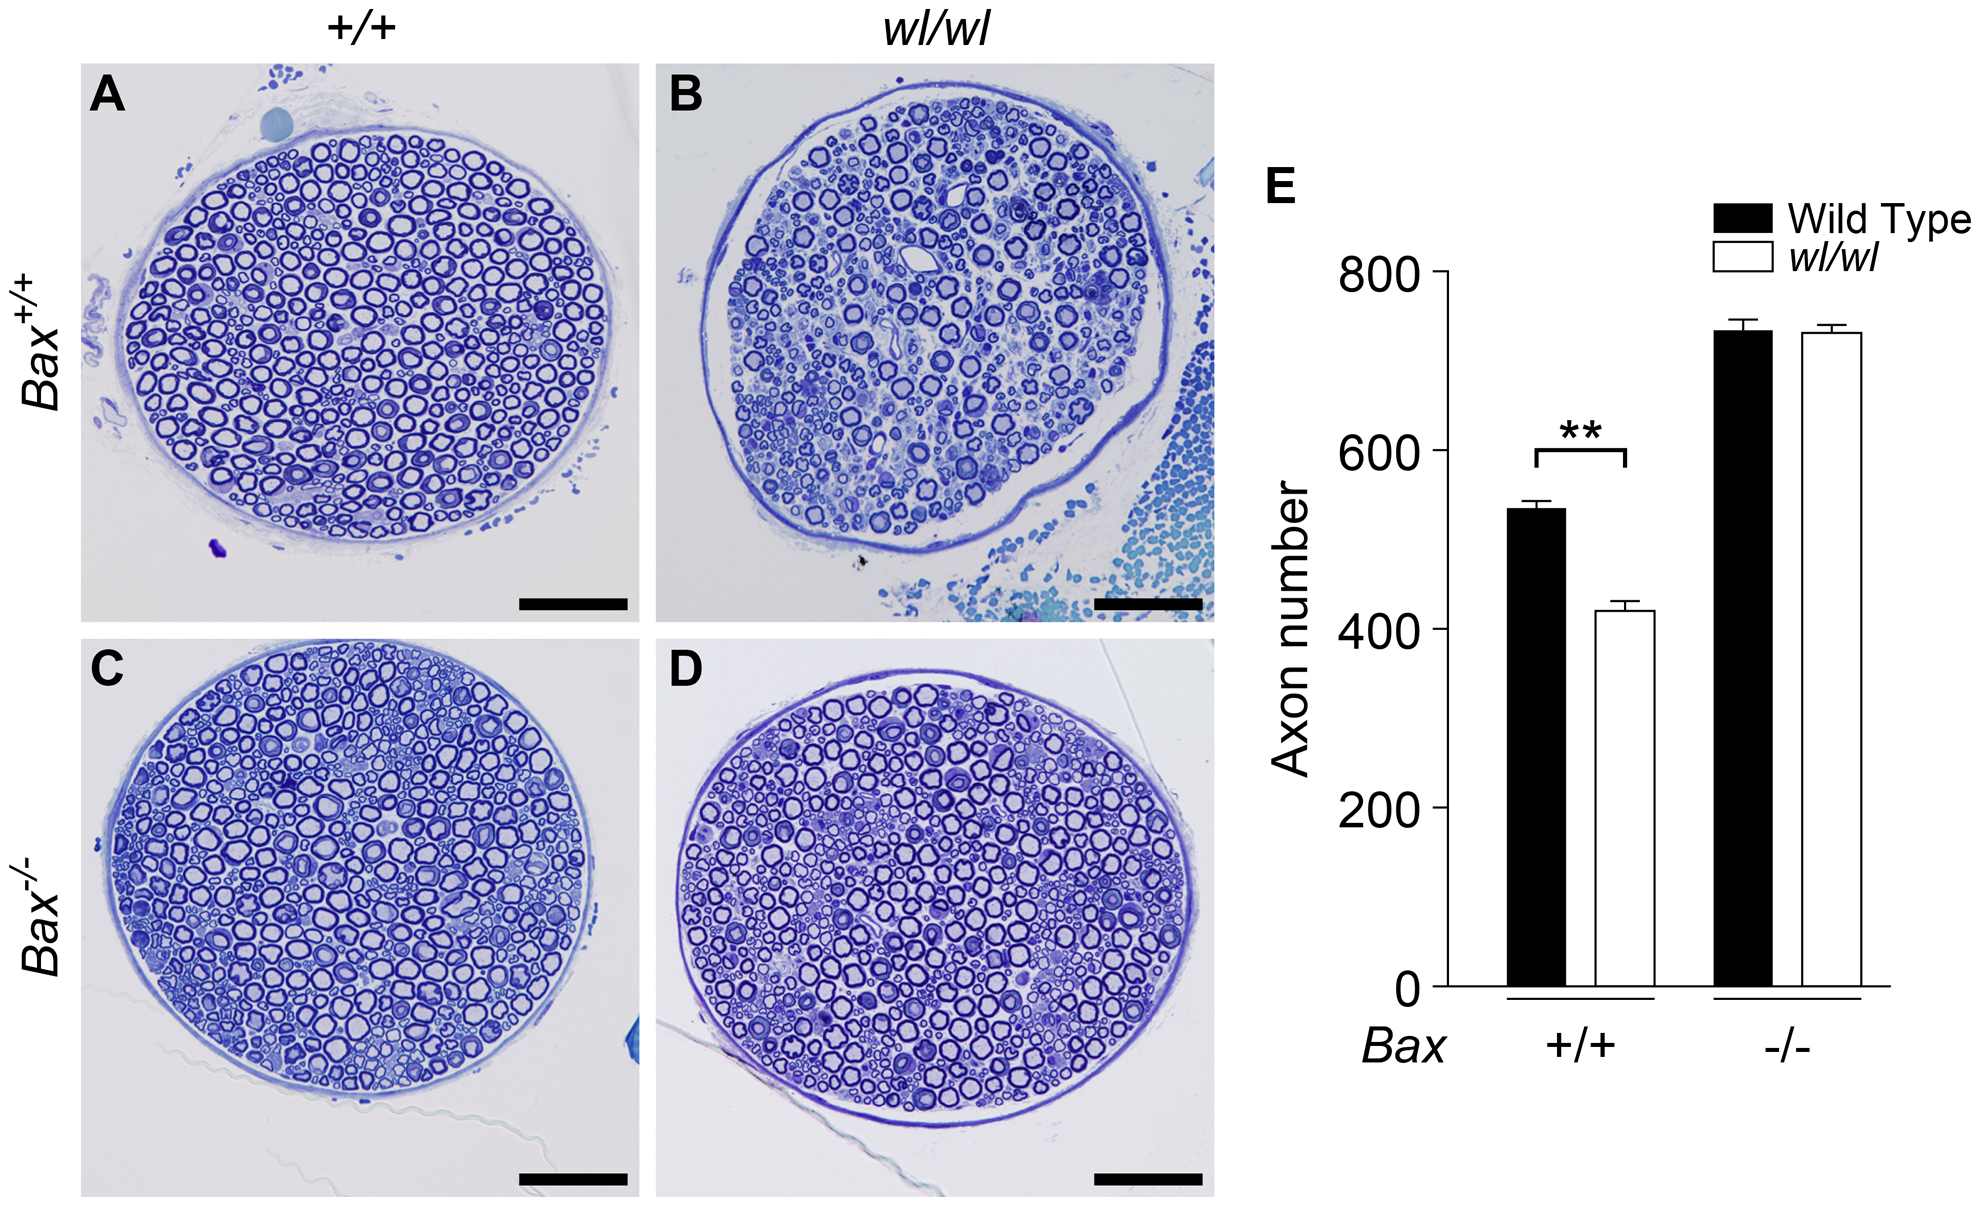 Genetic ablation of <i>Bax</i> protects axons from degeneration in <i>wl</i> mice.